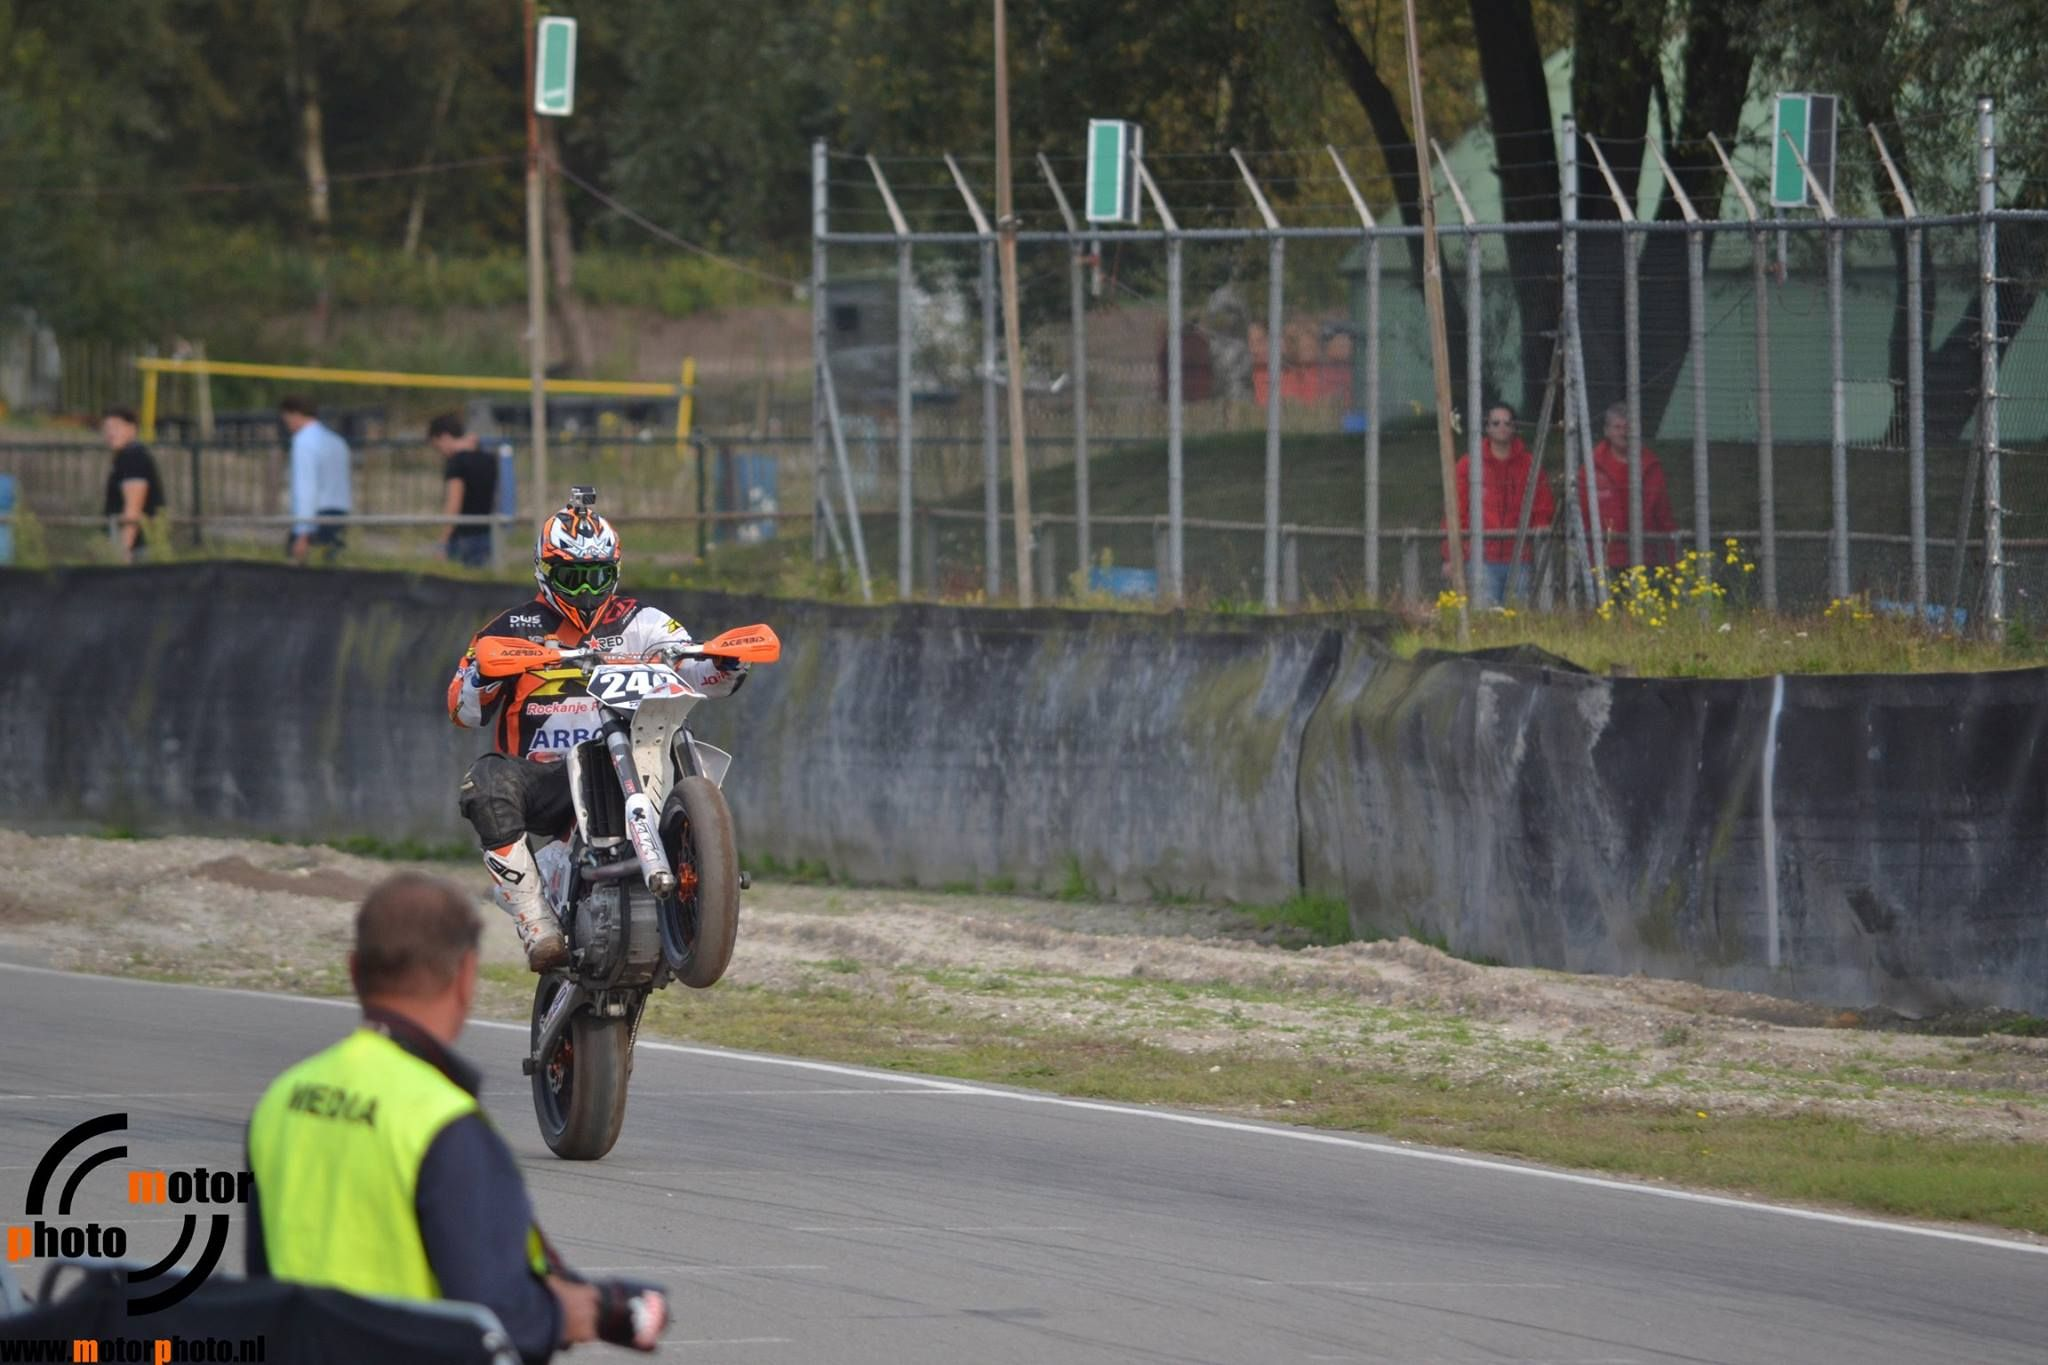 Victory Wheely! Supermoto Style!